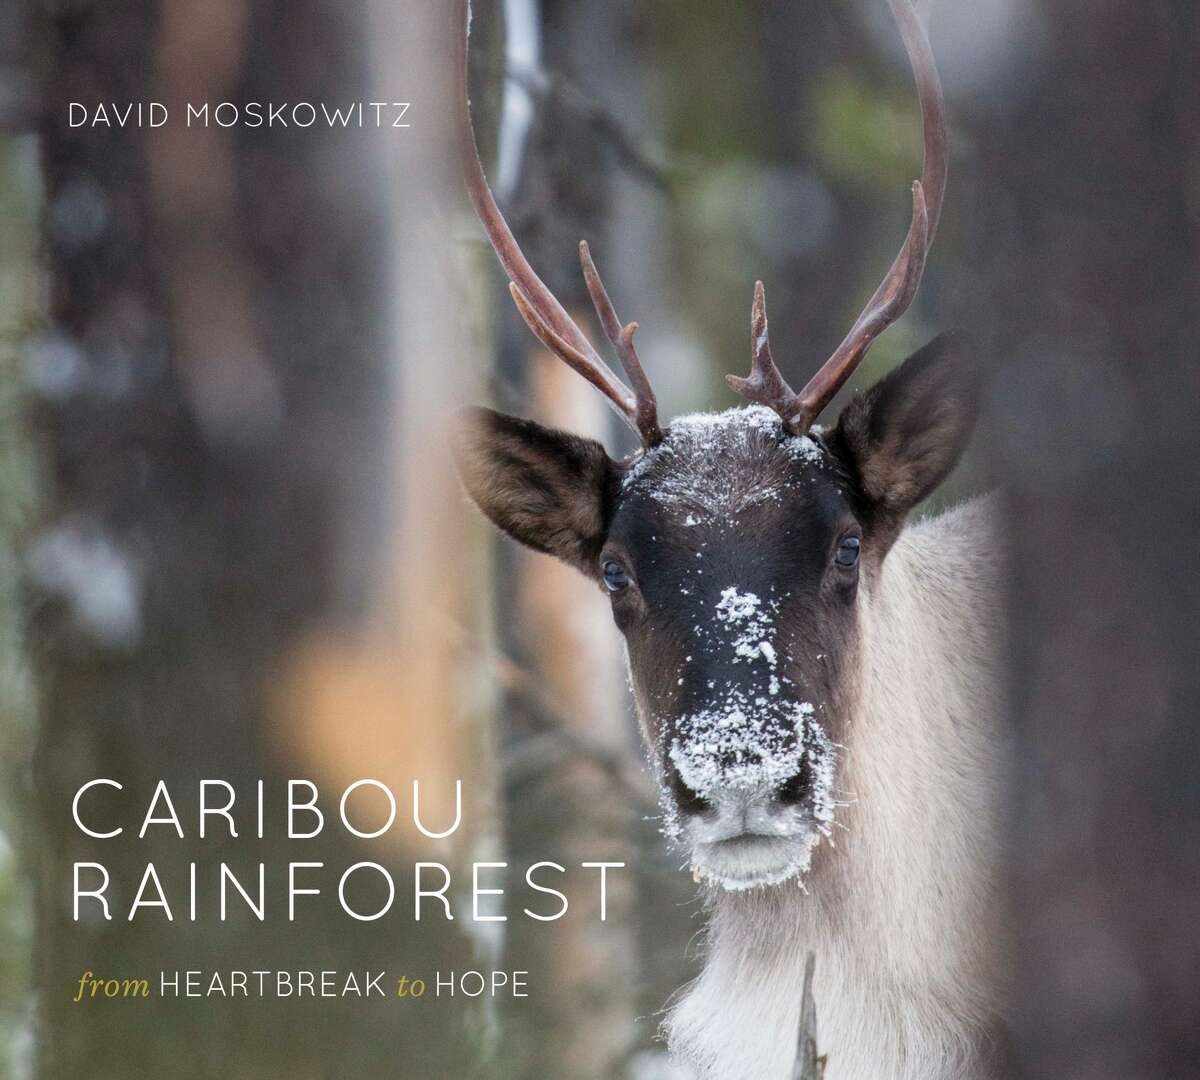 Mountain caribou: Rare, gentle, endangered signature species of the interior rainforests of western North America.